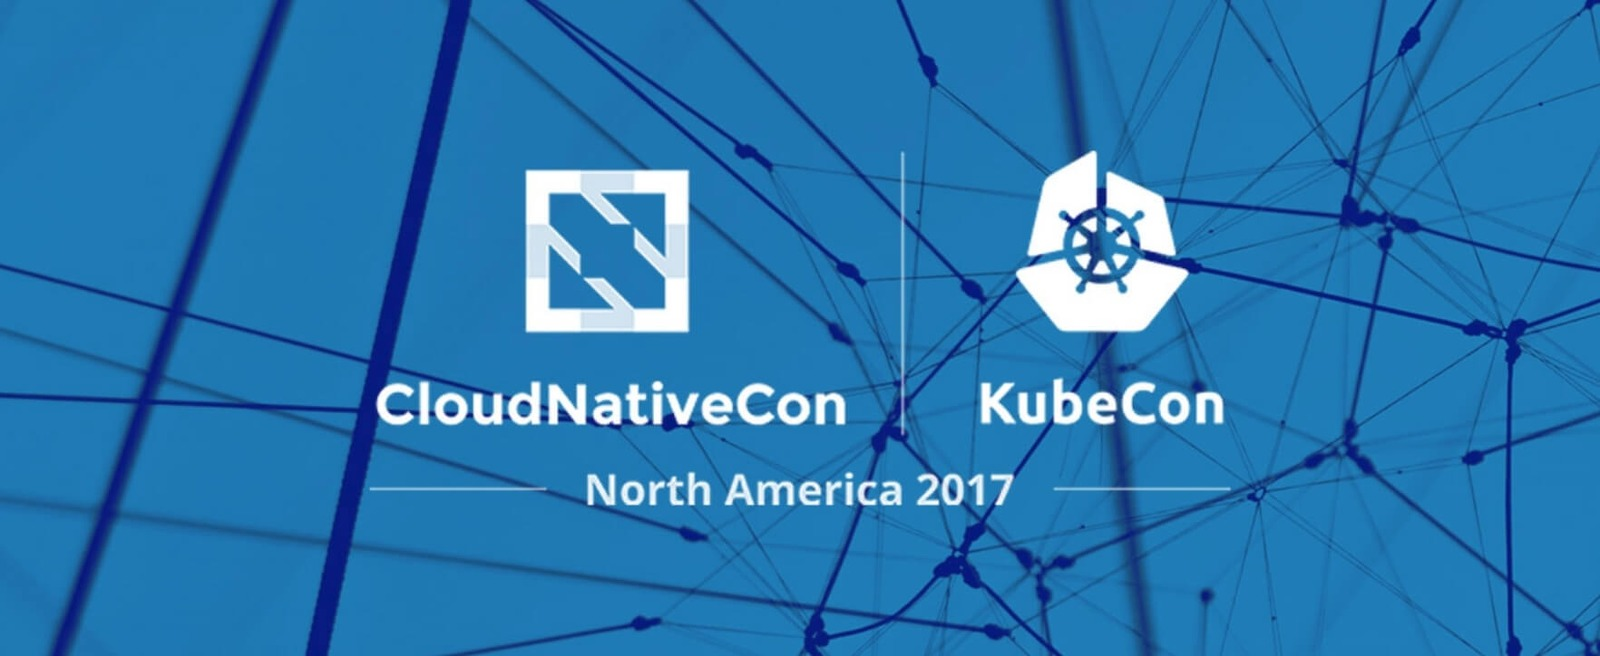 KubeCon 2017: The Application Layer Strikes Back